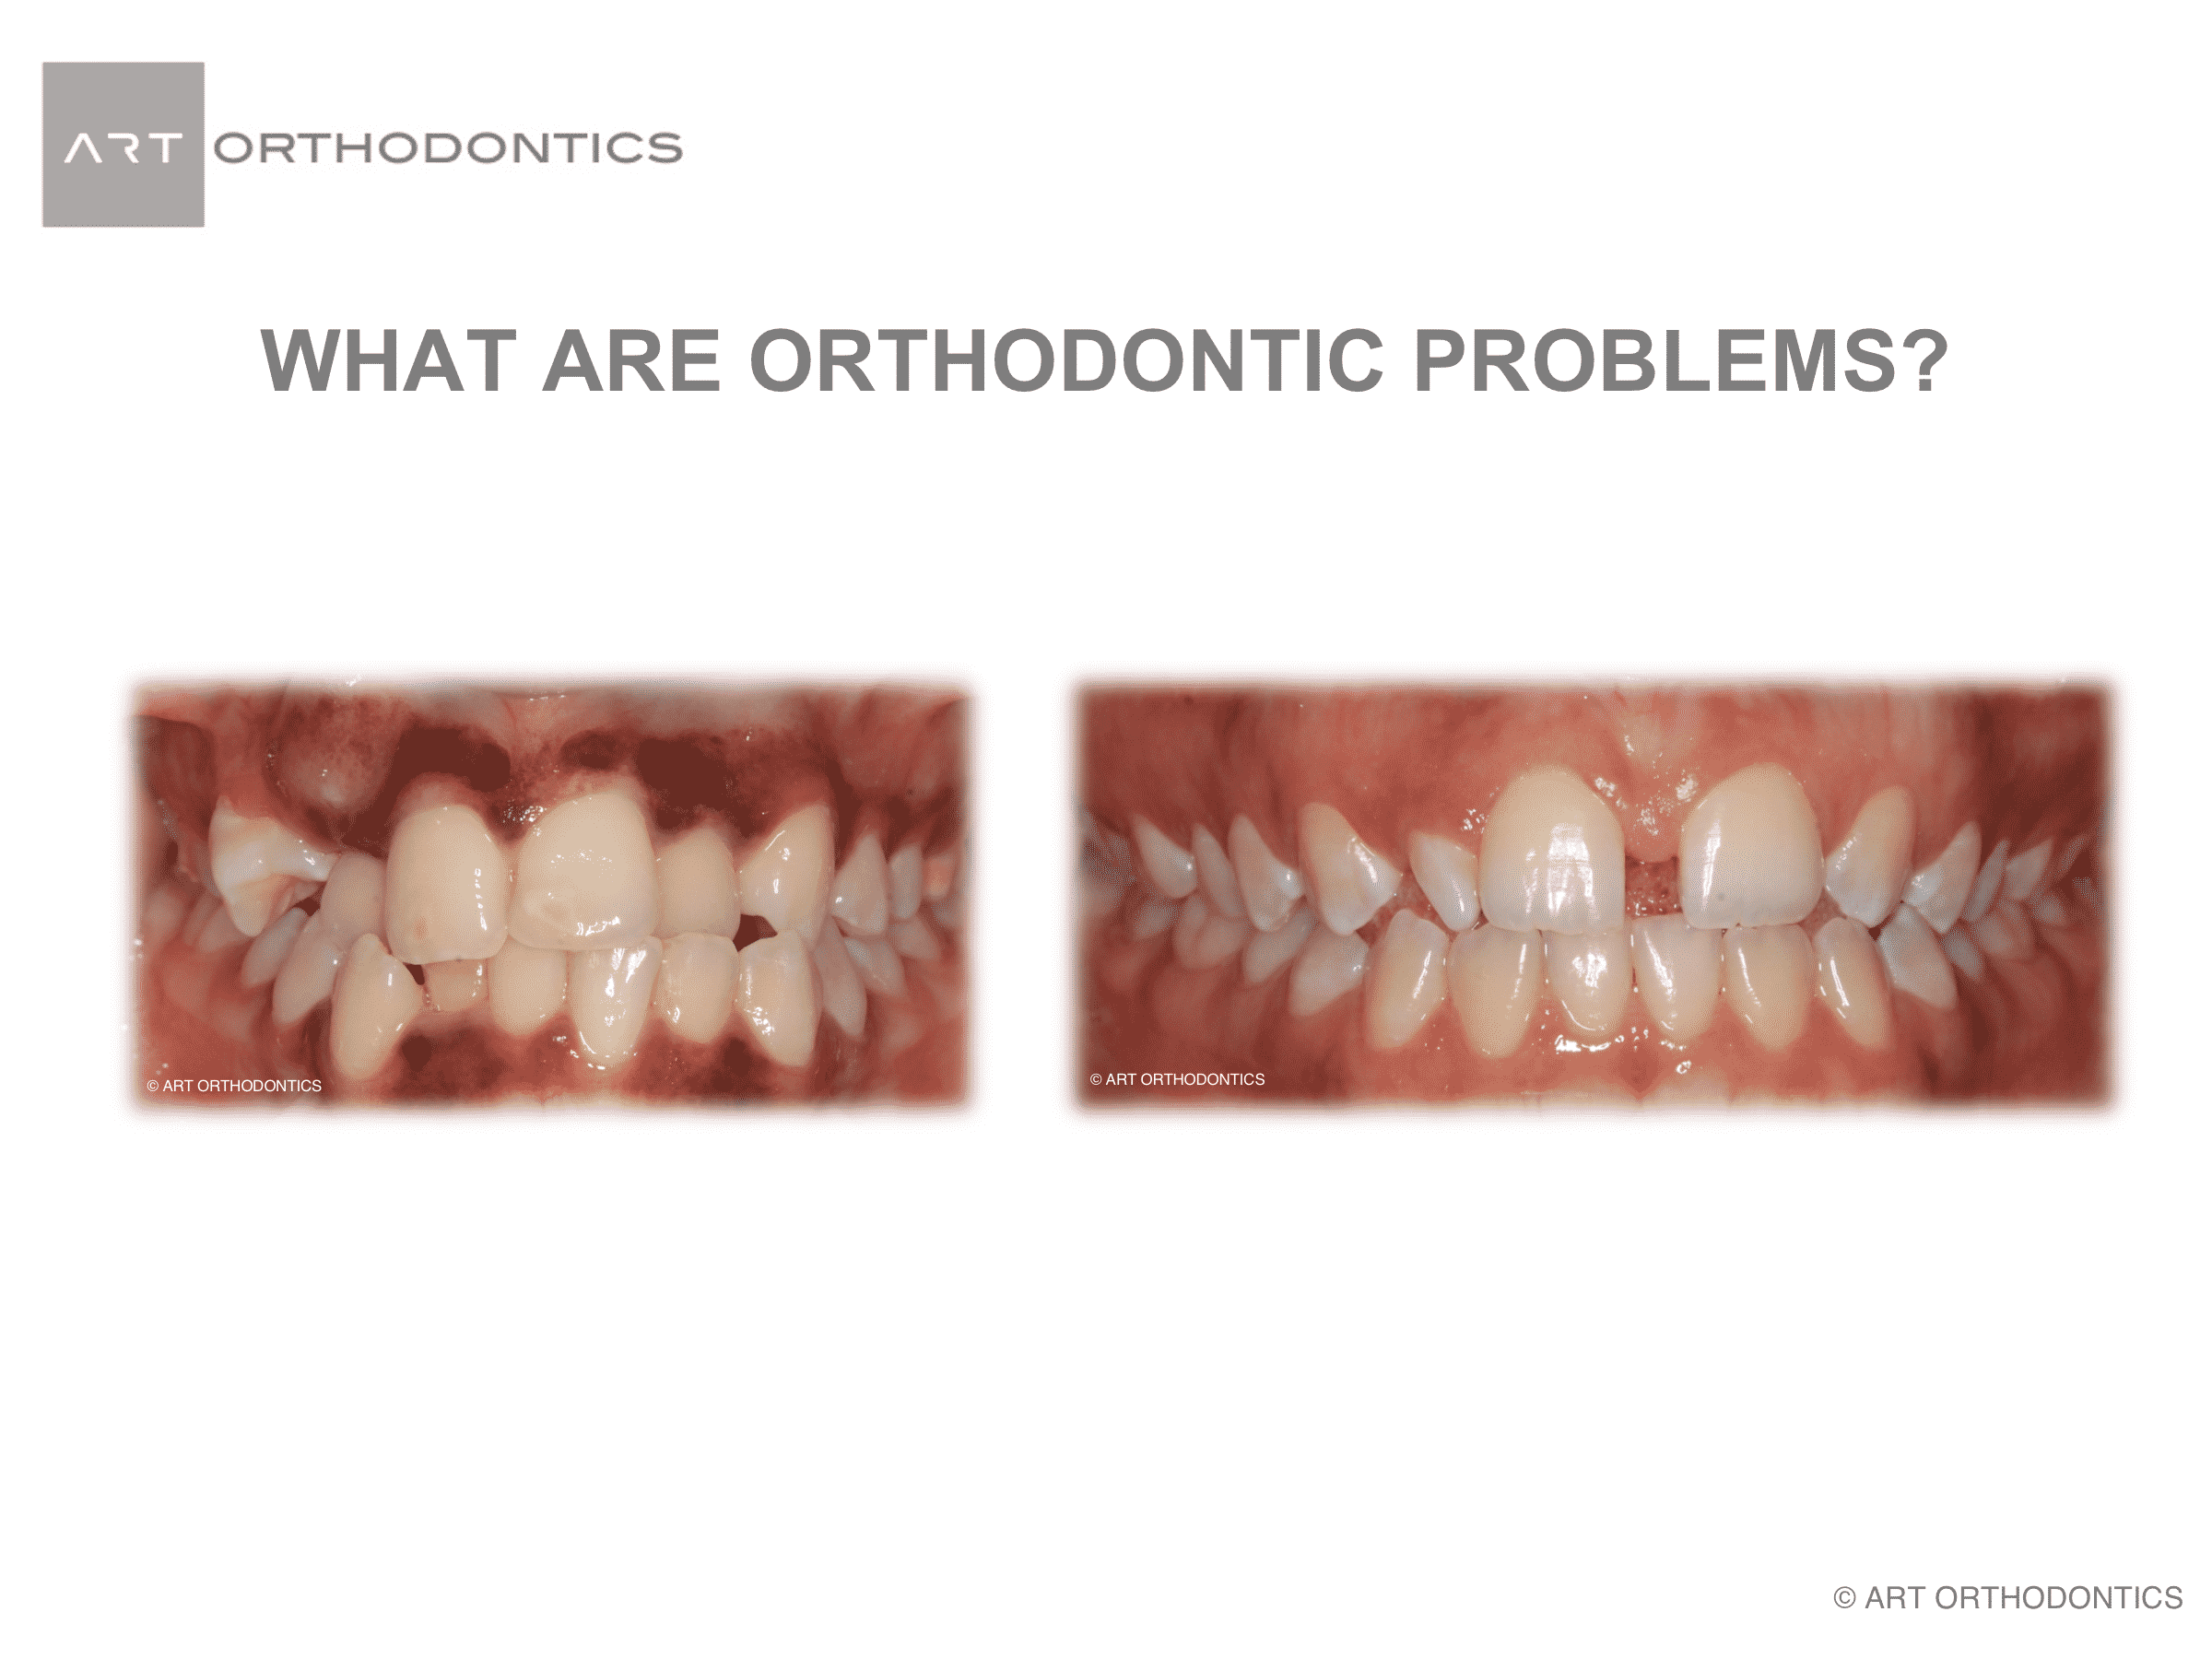 Crowded teeth and teeth with gaps as examples of orthodontic problems